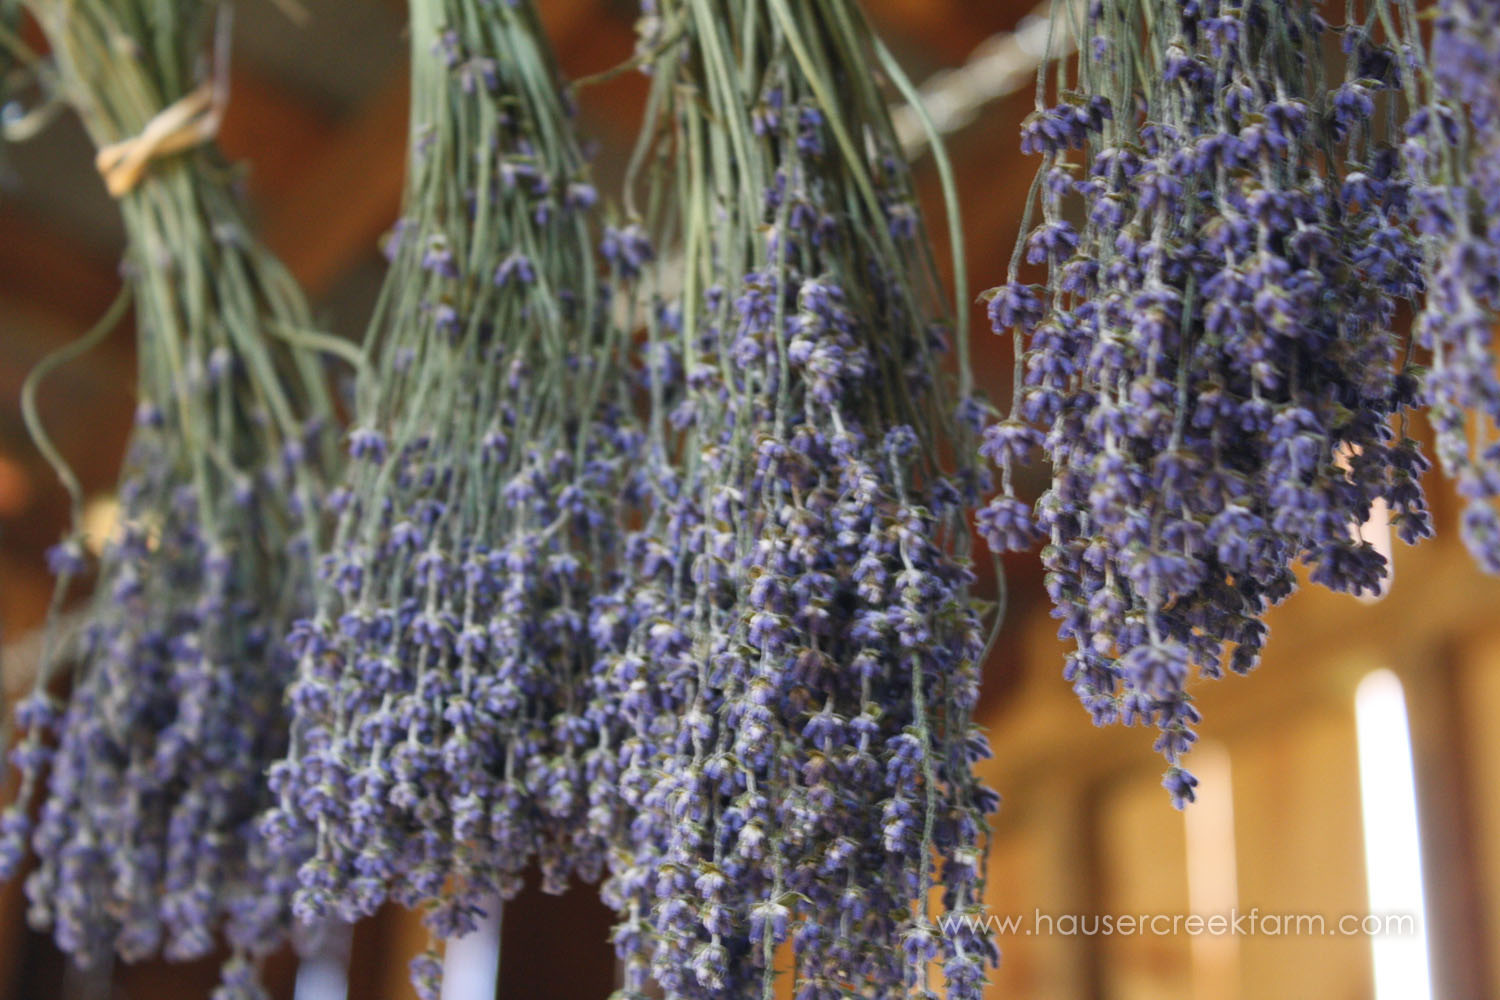 bundles-of-purple-blossom-lavender-plants-hanging-in-barn-upside-down-to-dry-IMG_9041 (2).jpg